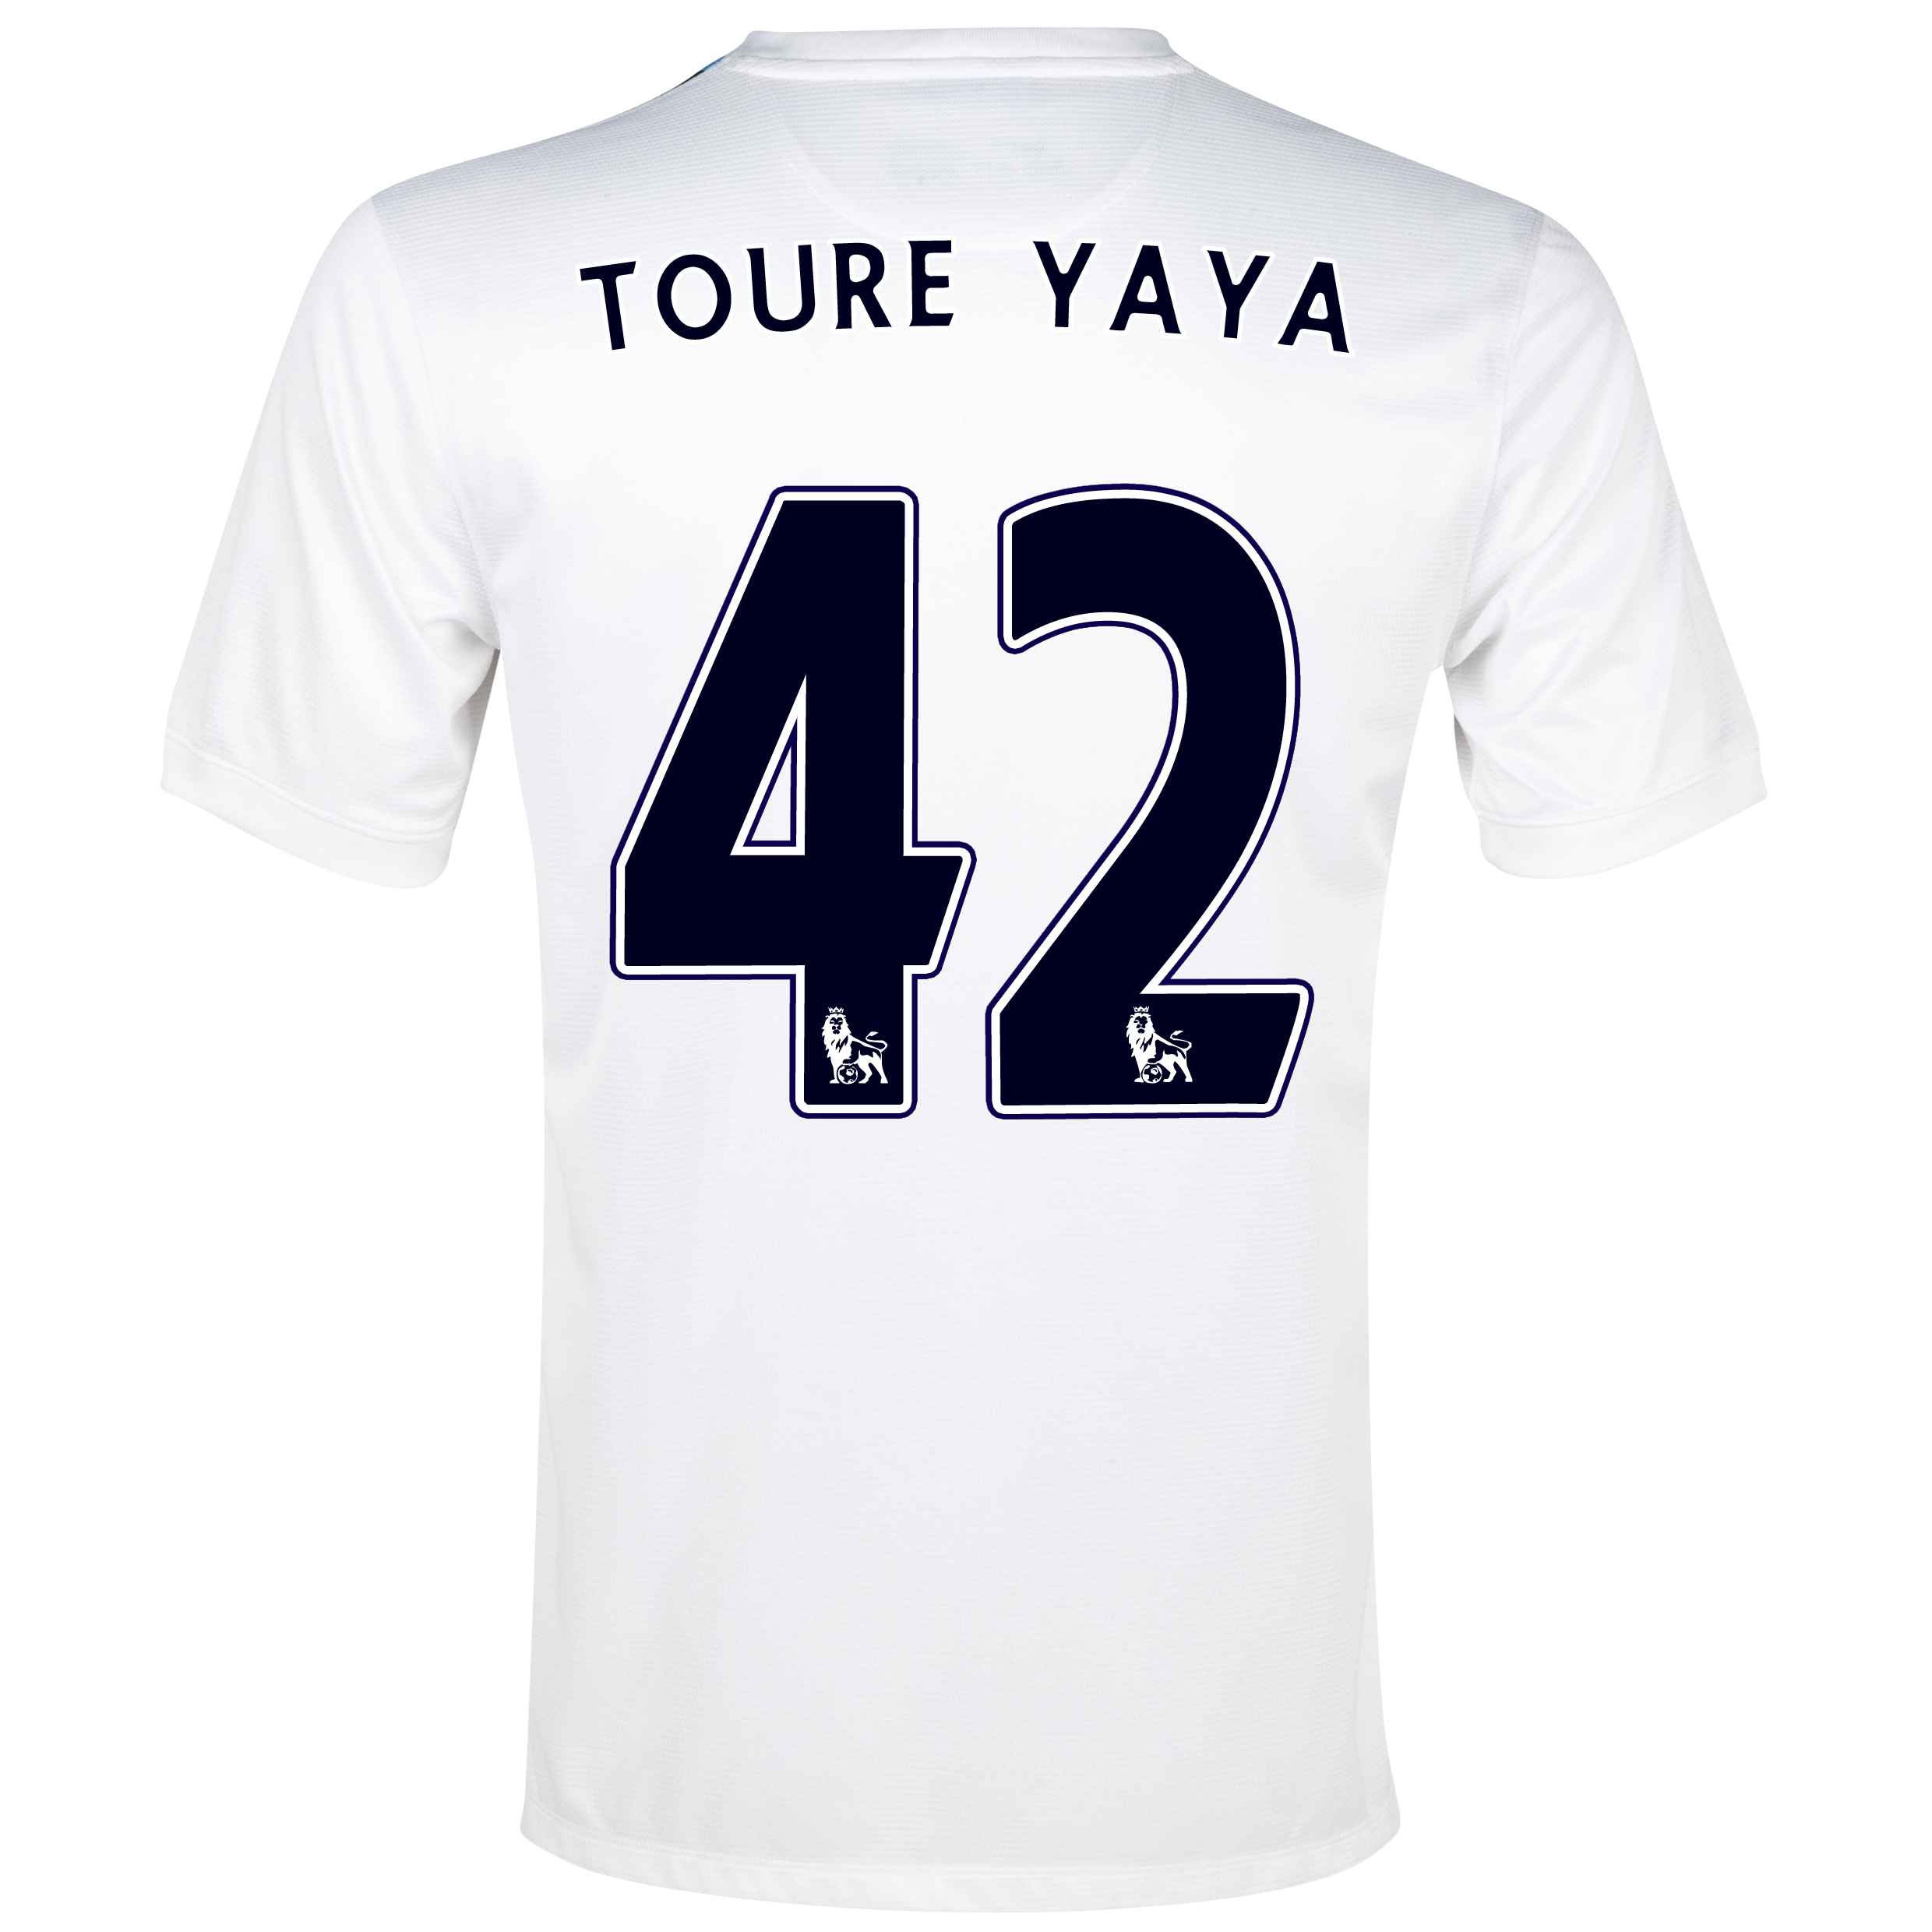 Manchester City Cup Away Shirt 2013/14 White with Toure Yaya 42 printing